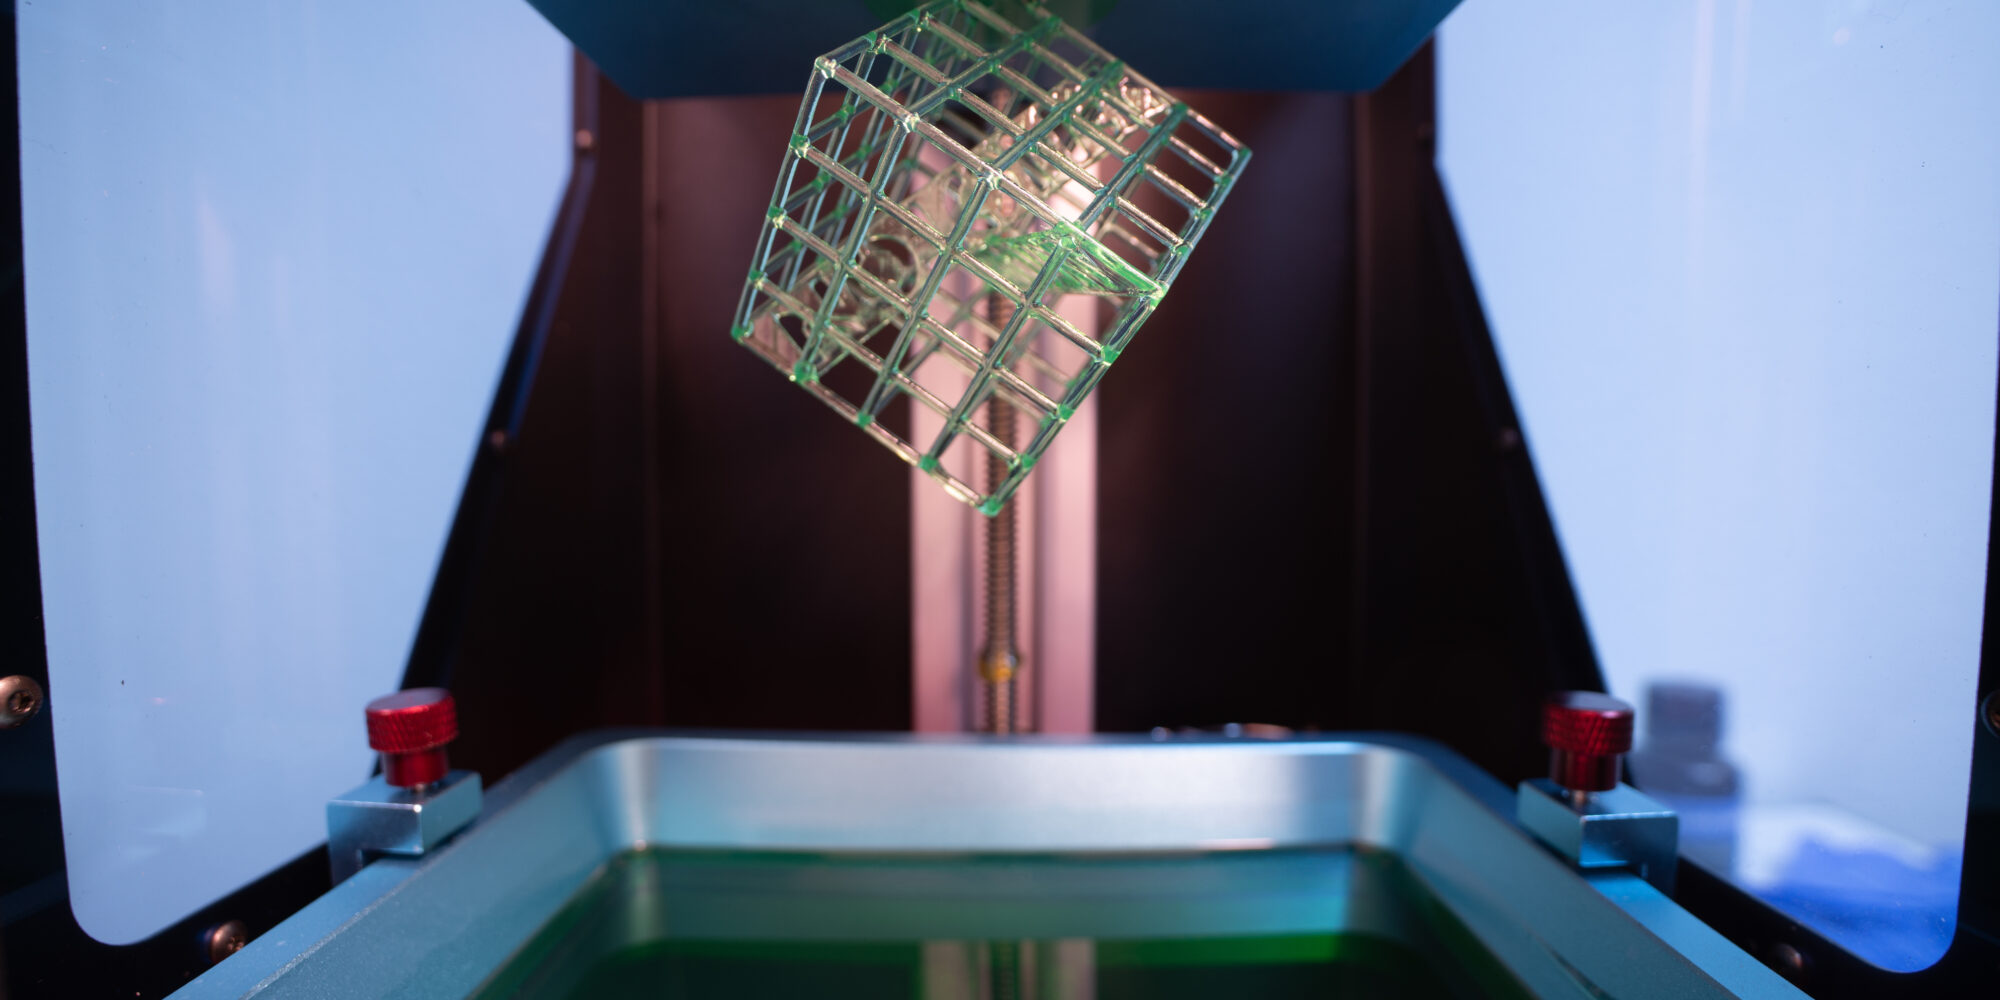 DLP and SLA 3D-printing are both Vat photopolymerization processes where a photopolymer bed is exposed to UV light to shape a 3D-printed object.